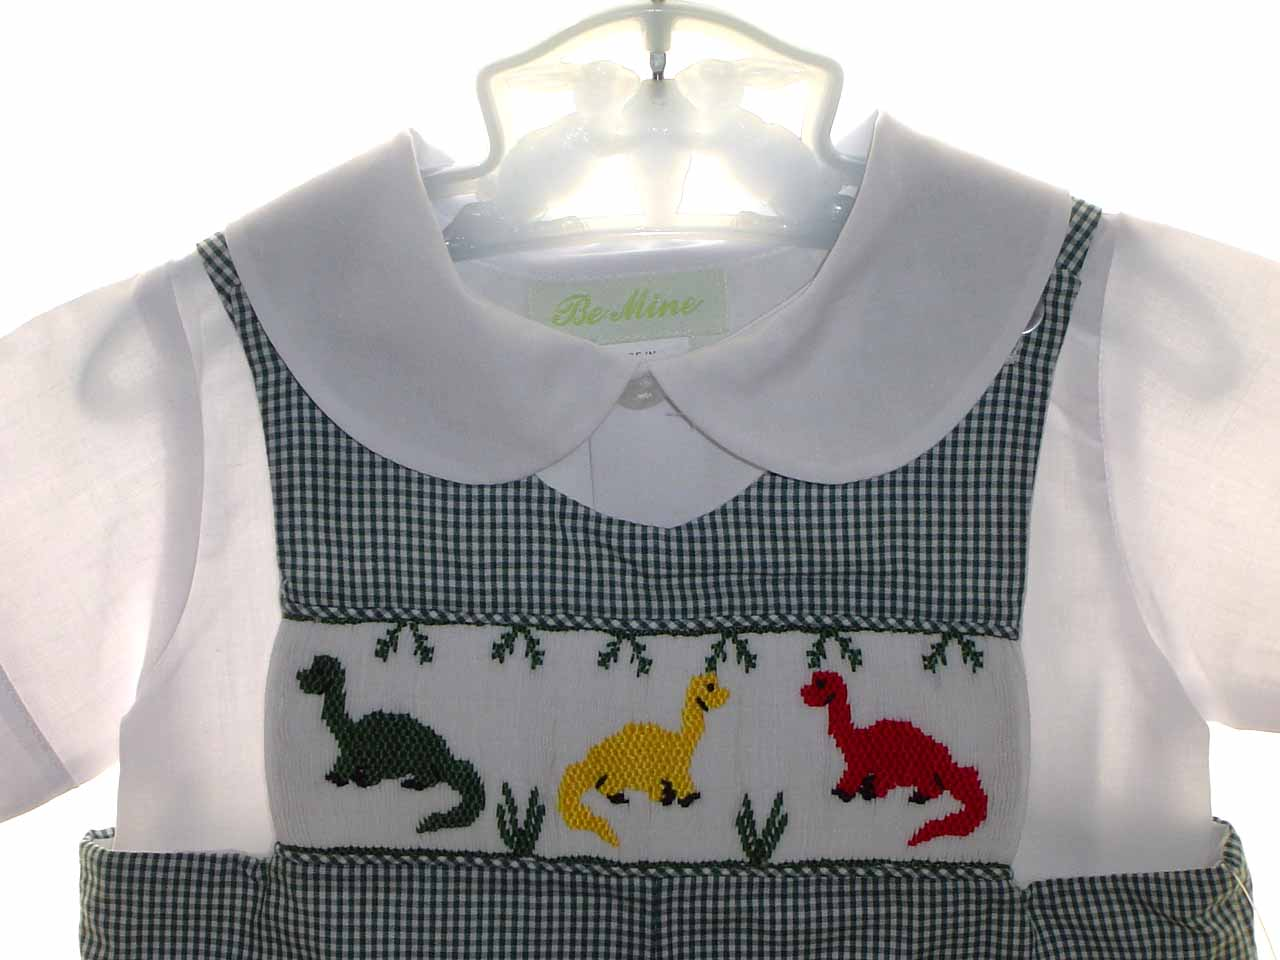 Be Mine Smocked Shortall Set Smocked Boys Outfit Smocked